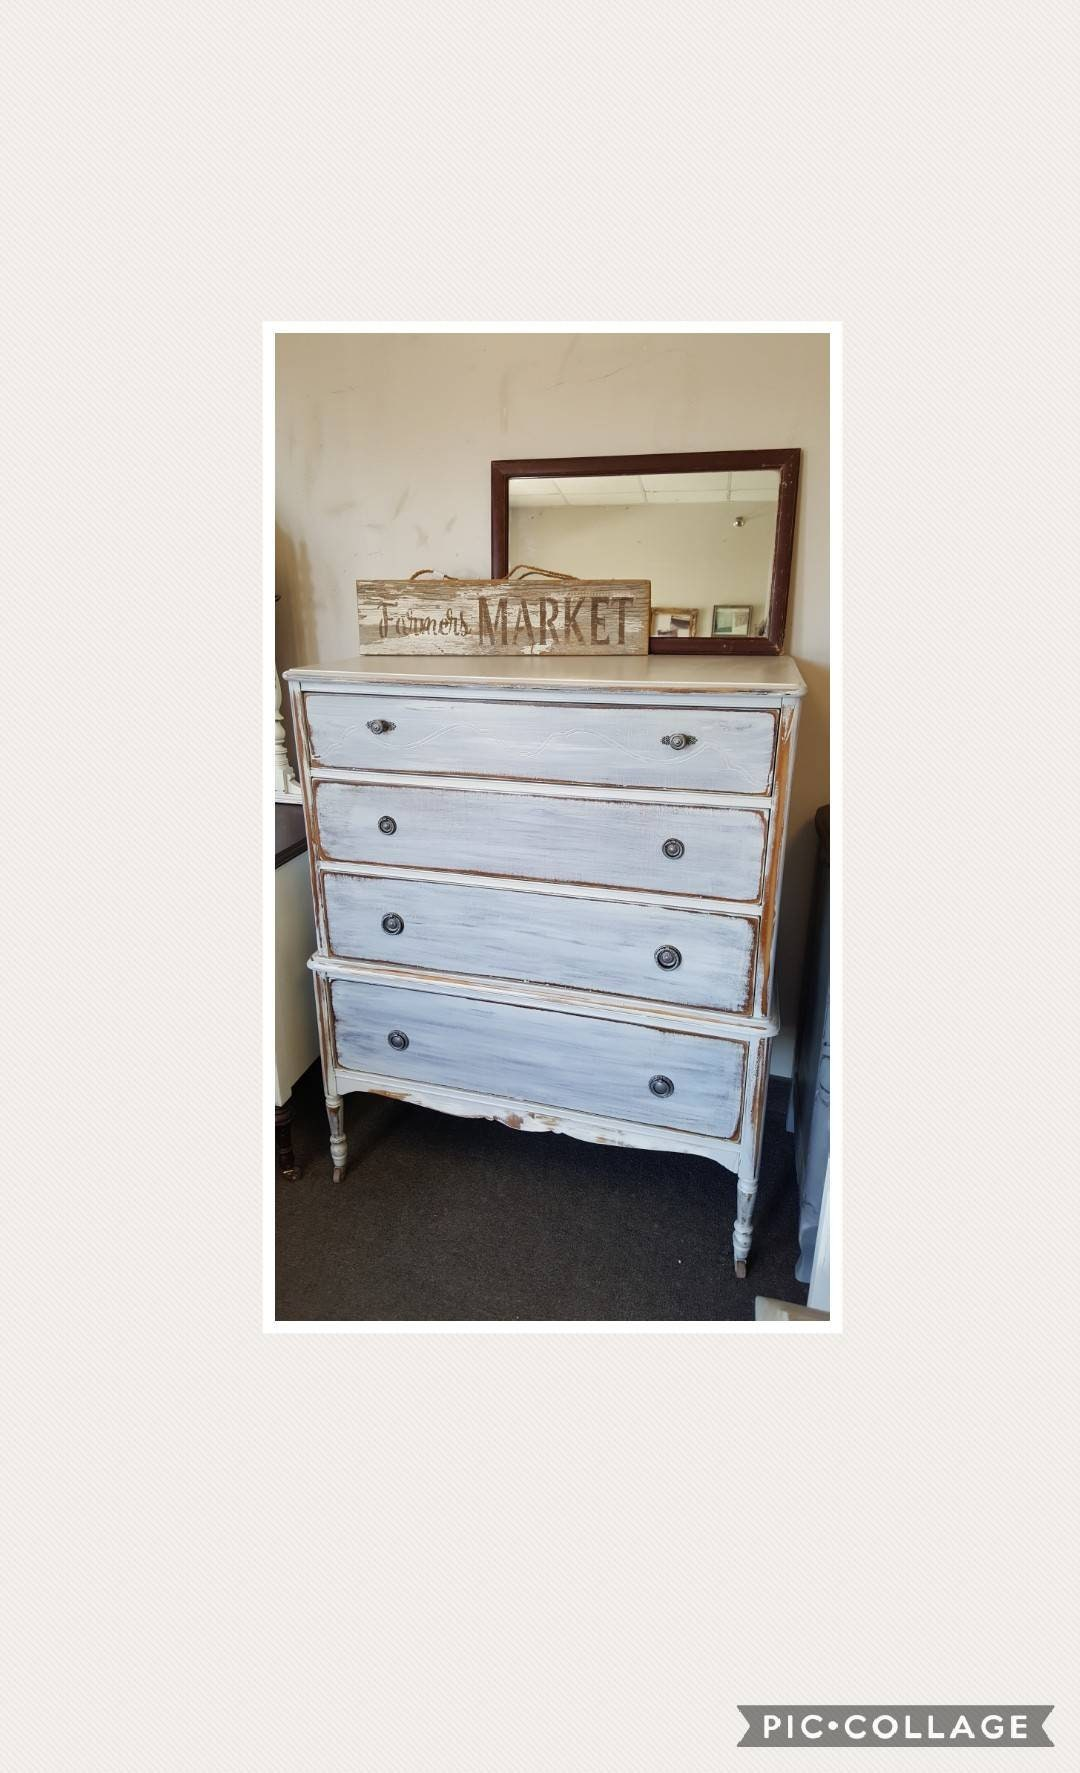 tall dresser chest. PICK UP ONLY Vintage Shabby Chic Tall Dresser, Chest, Driftwood Finish, Bureau,french Country, France, Boy, Rustic, Farmhouse, Bedroom Dresser Chest